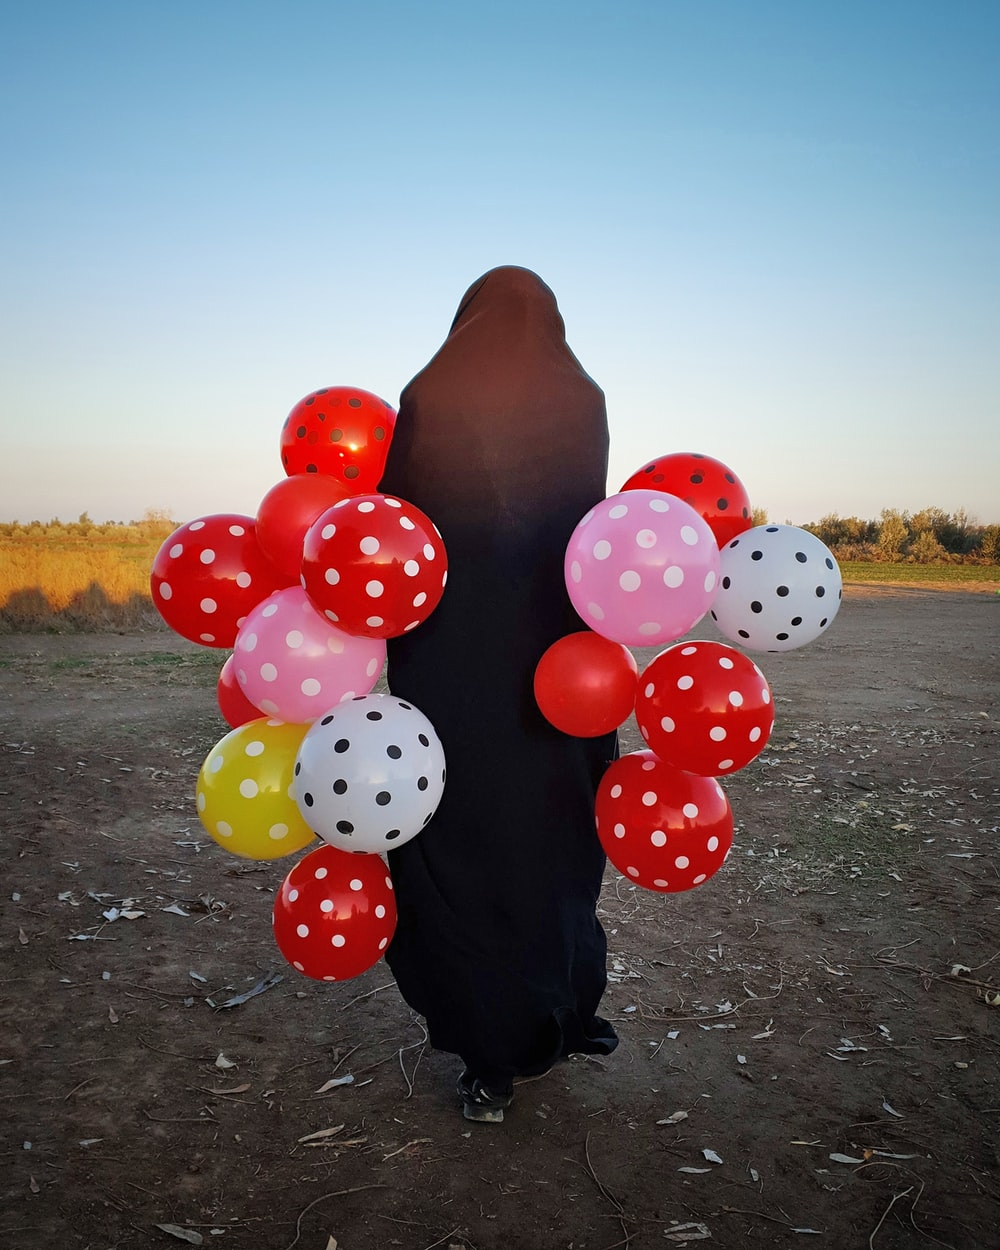 person holding red and white polka dot balloons